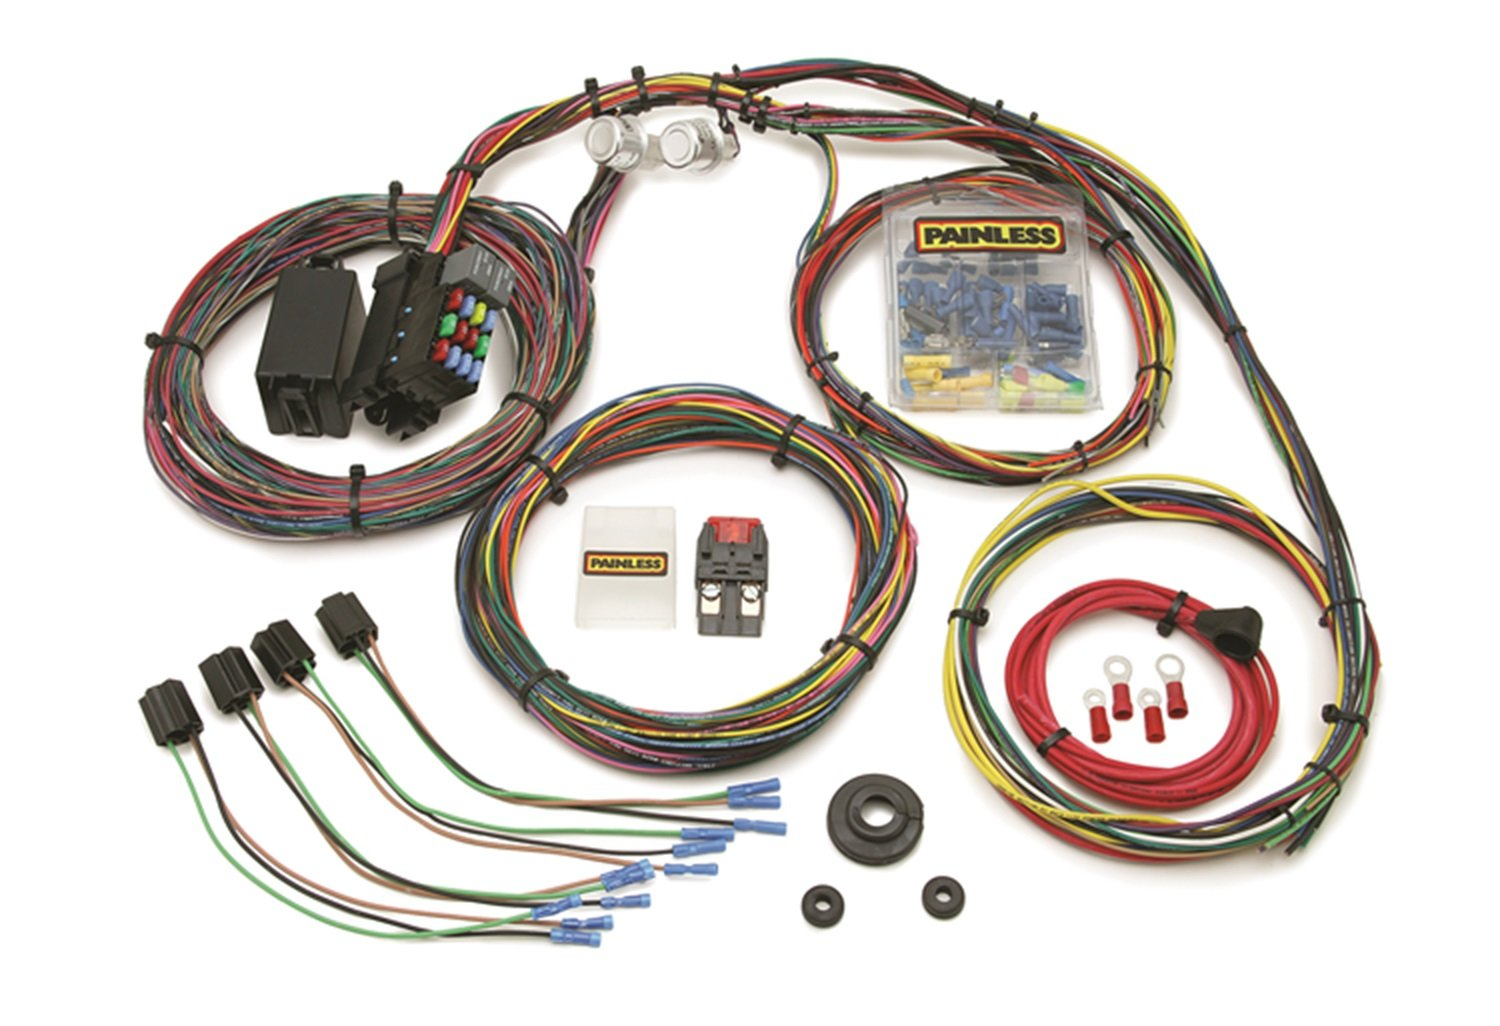 71gWOH5D5zL._SL1500_ amazon com painless 10127 automotive Universal Wiring Harness Diagram at webbmarketing.co